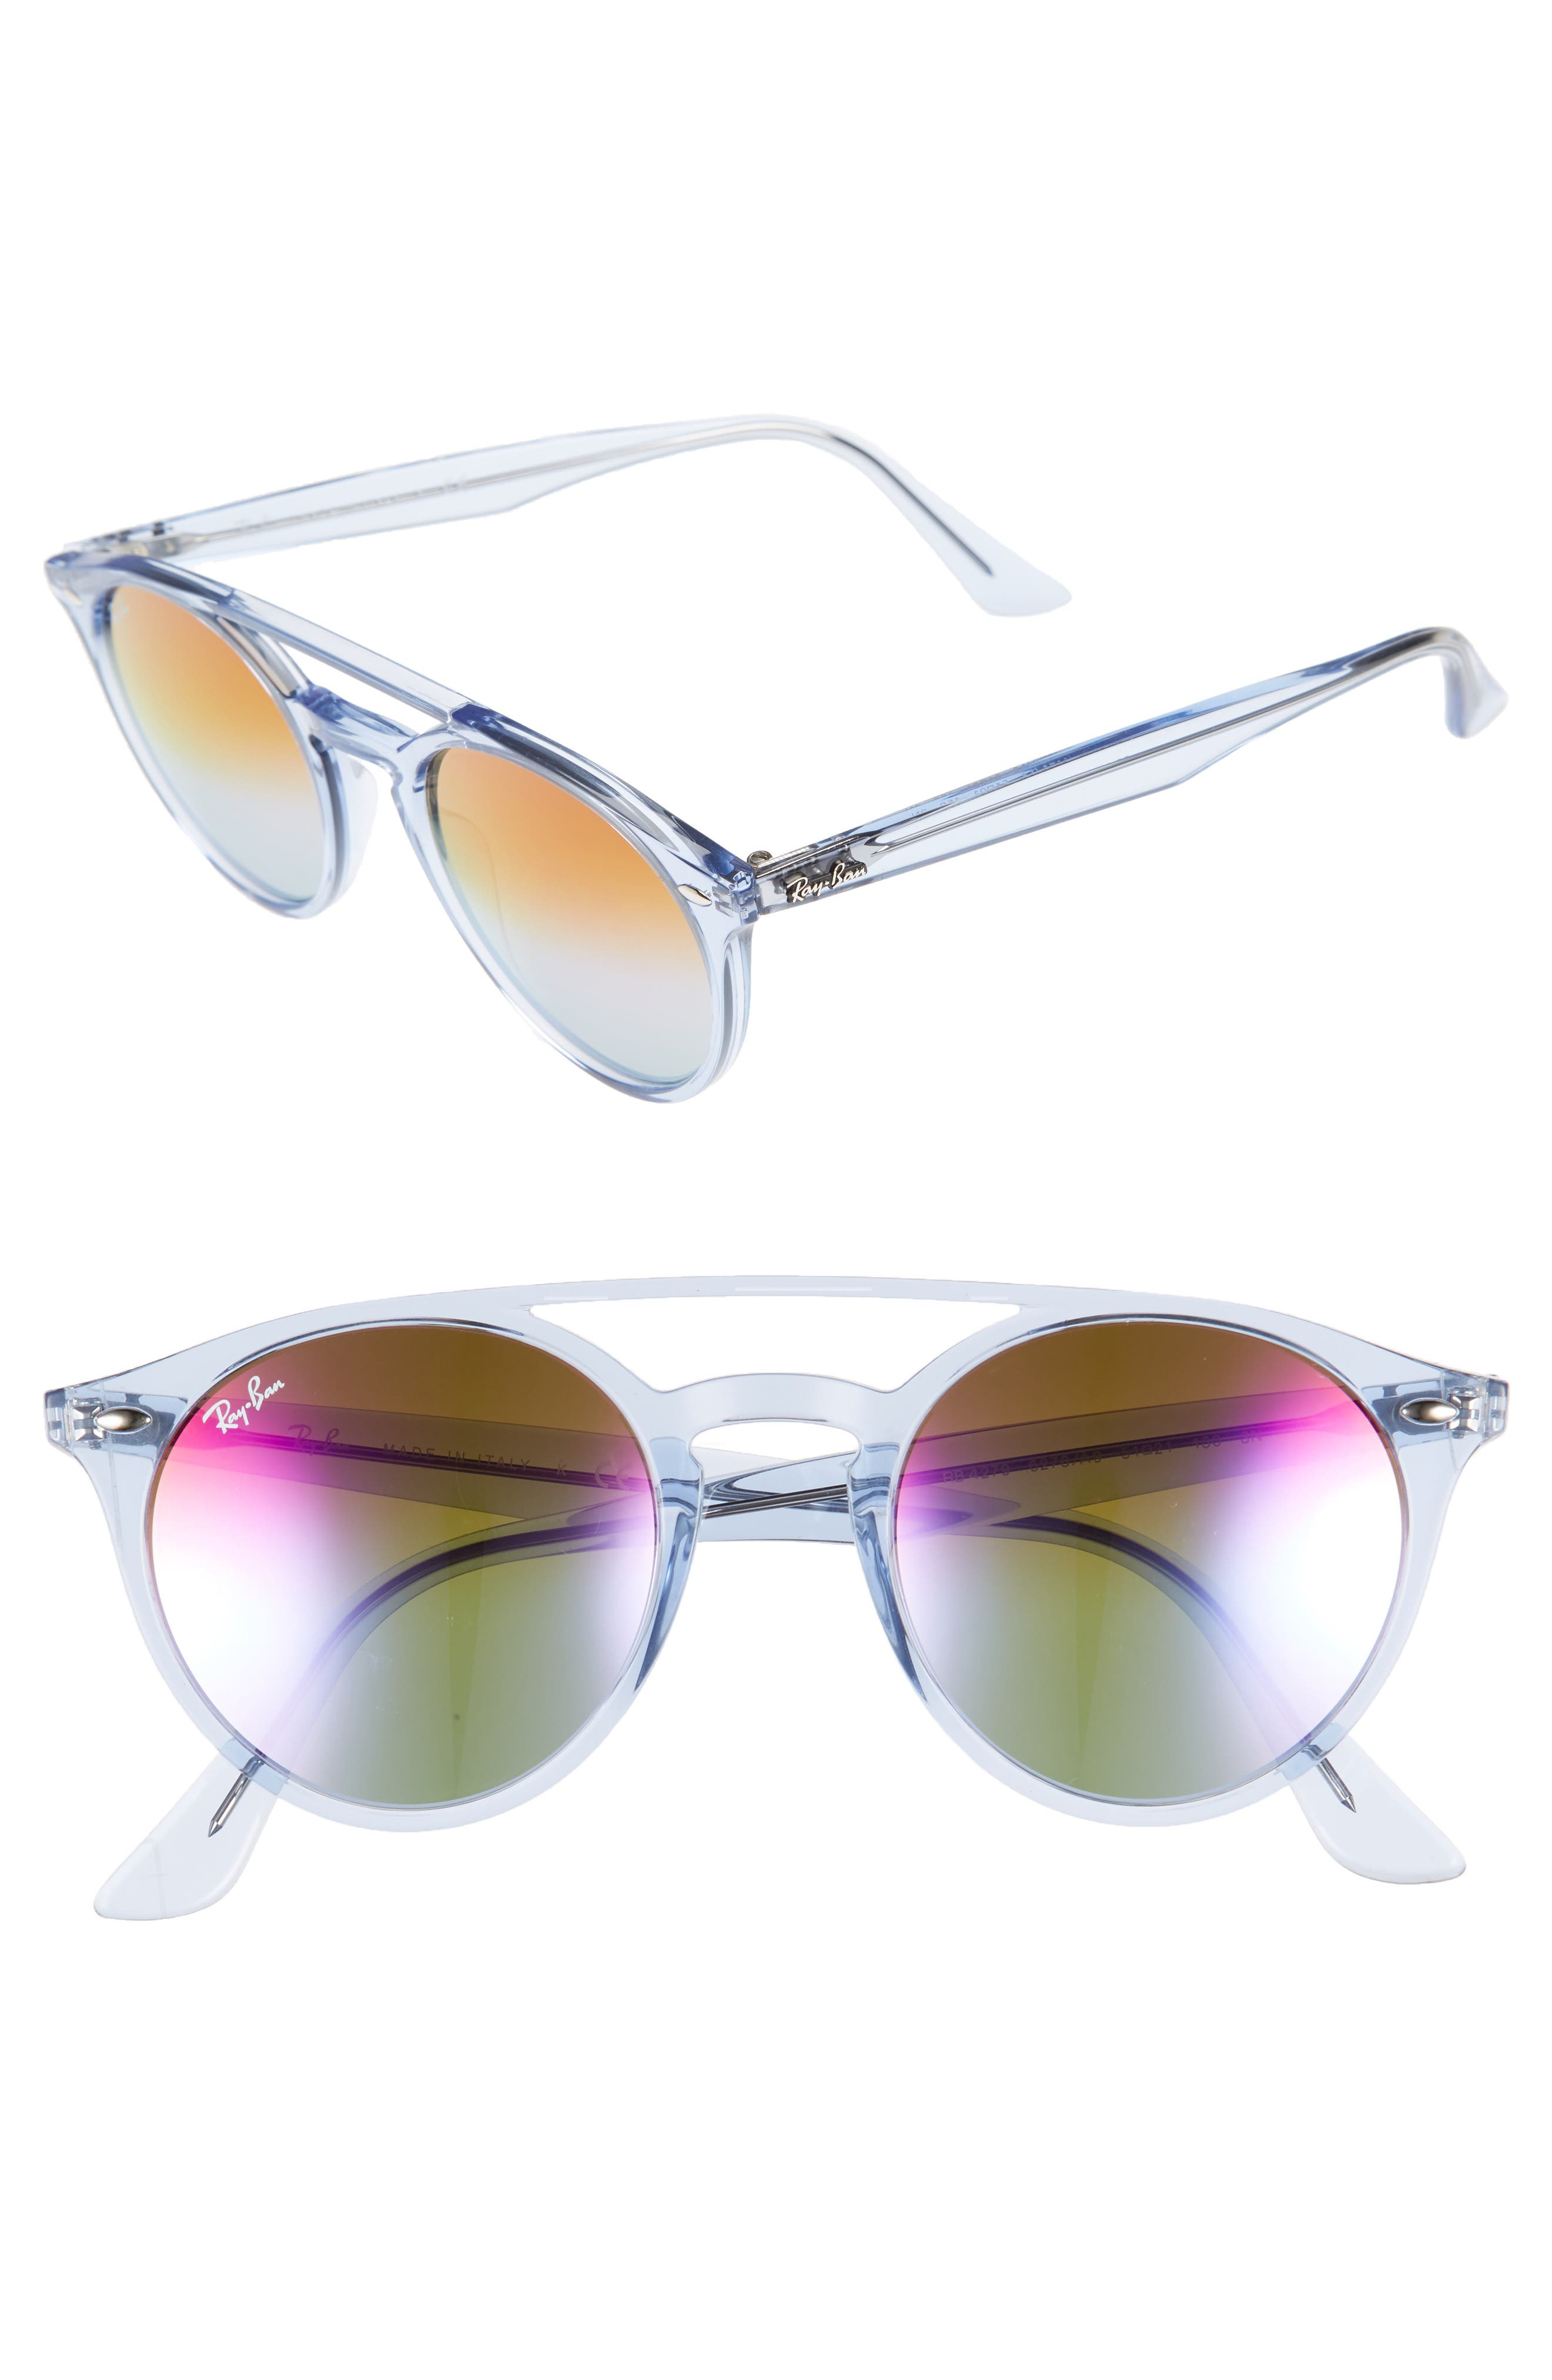 51mm Mirrored Rainbow Sunglasses,                             Alternate thumbnail 2, color,                             428